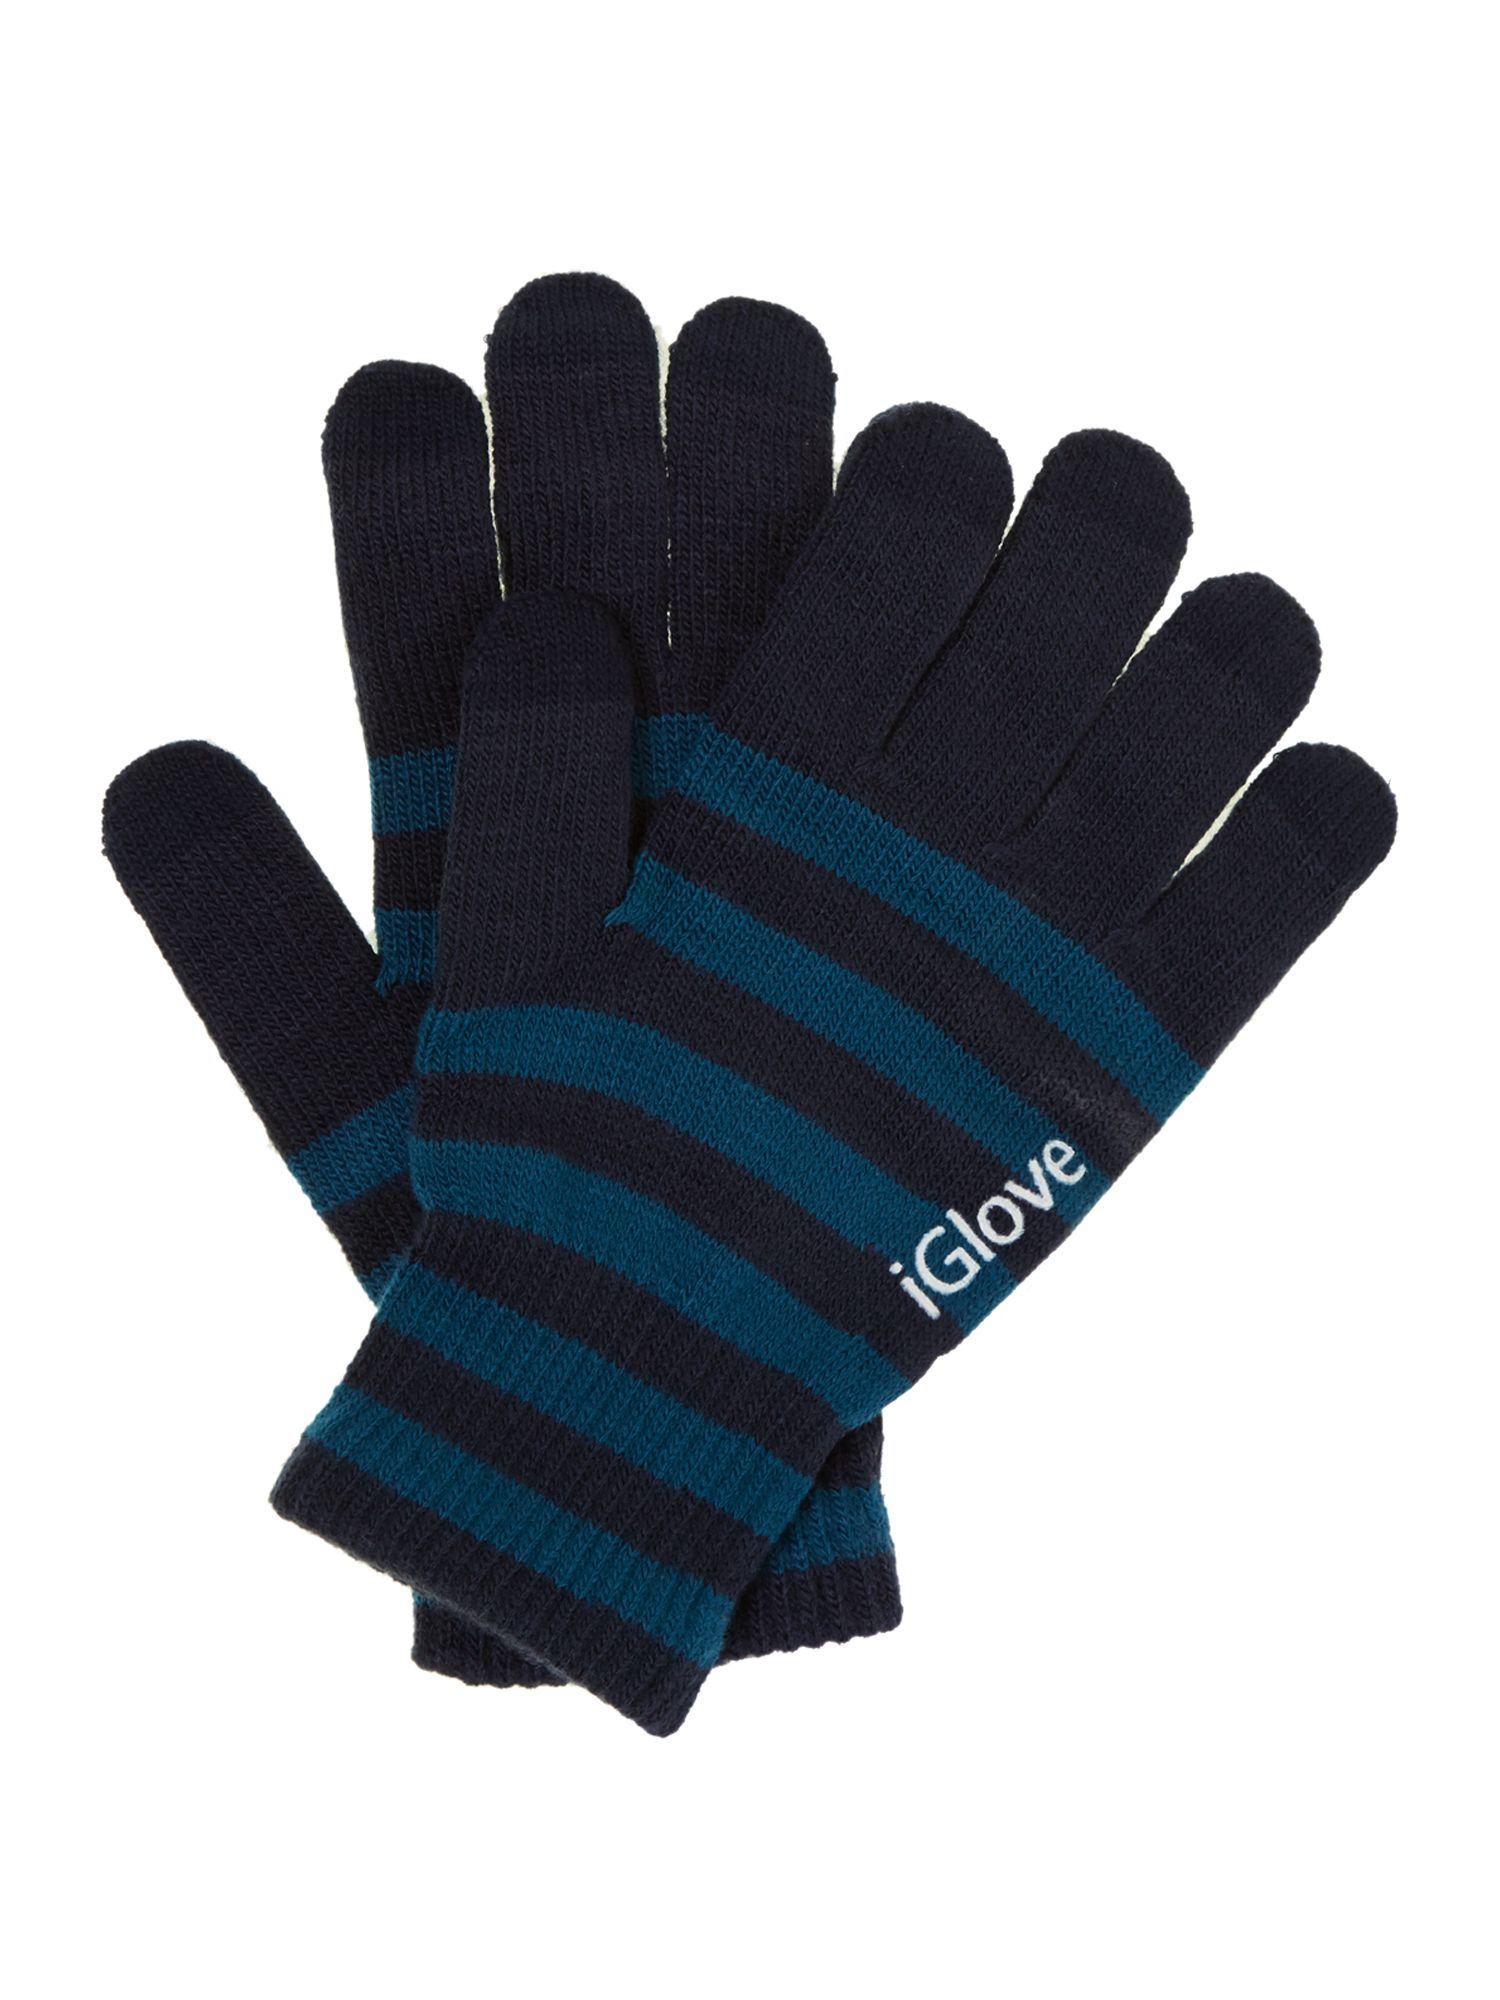 Stripe five finger touch screen glove